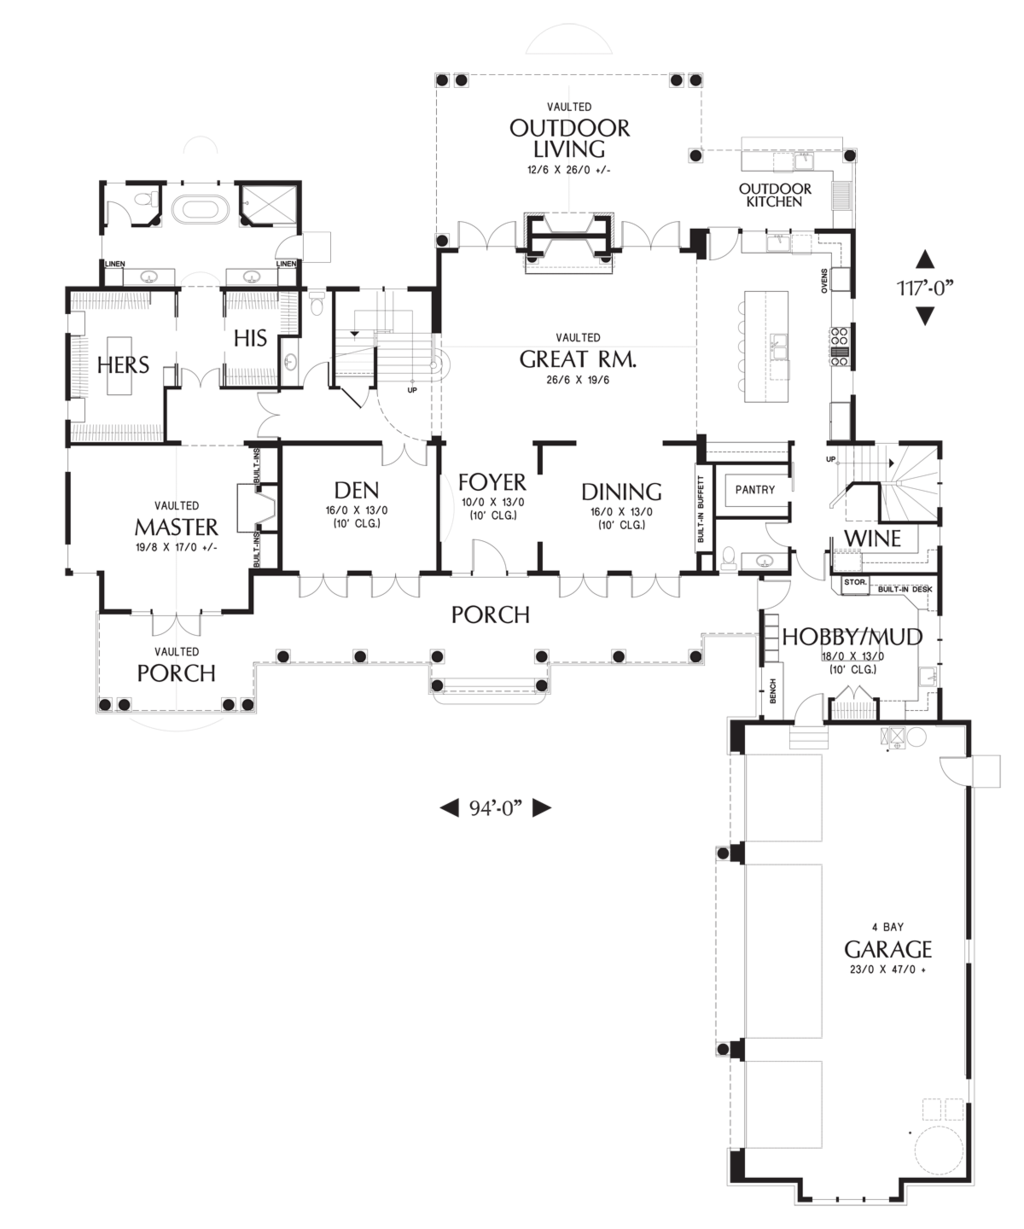 Colonial Style House Plan 4 Beds 5 Baths 4903 Sq Ft Plan 48 642 Colonial House Plans House Plans House Floor Plans